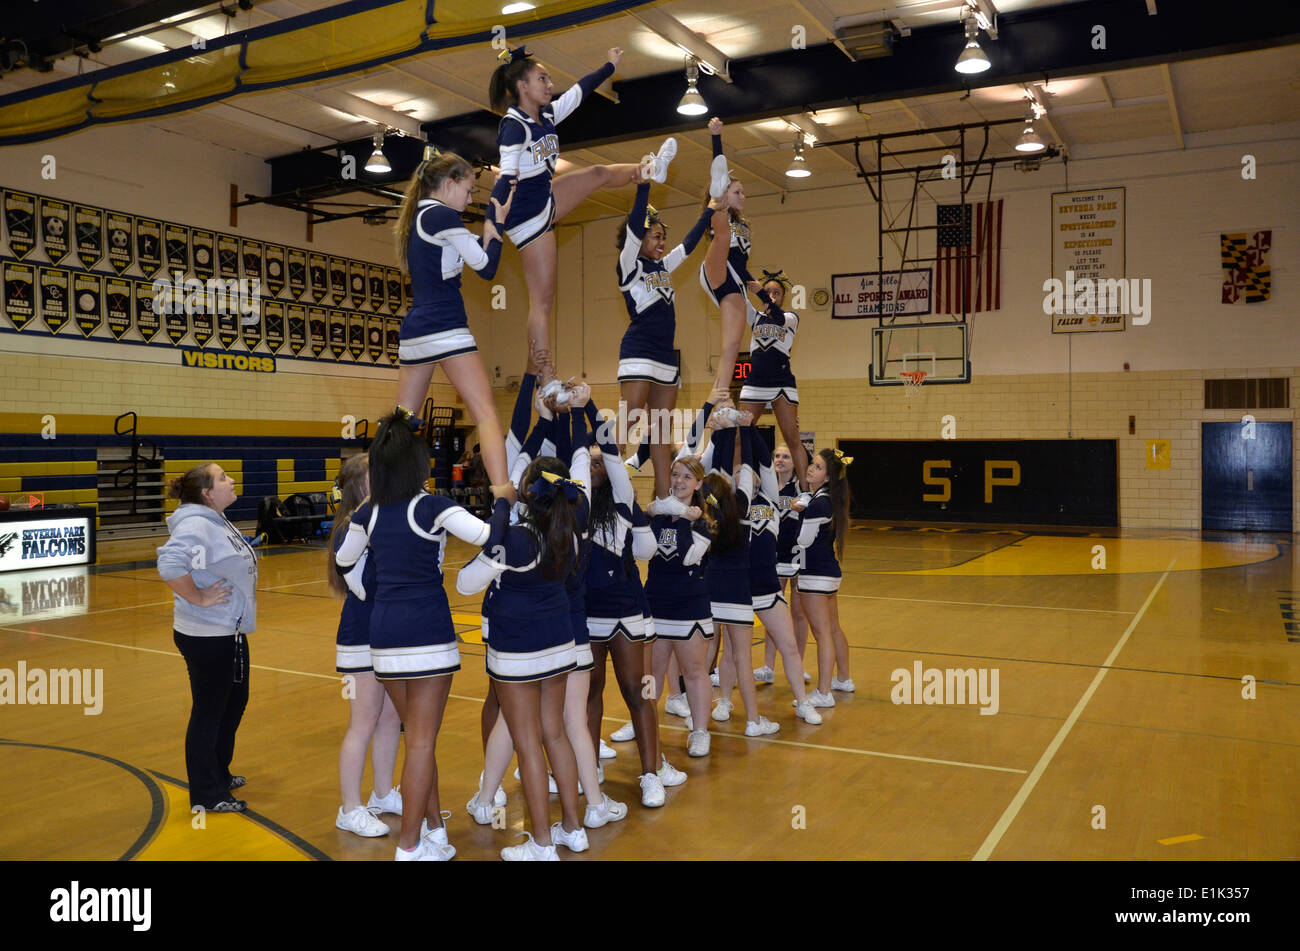 Cheerleaders perform during halftime at a high school basketball game - Stock Image